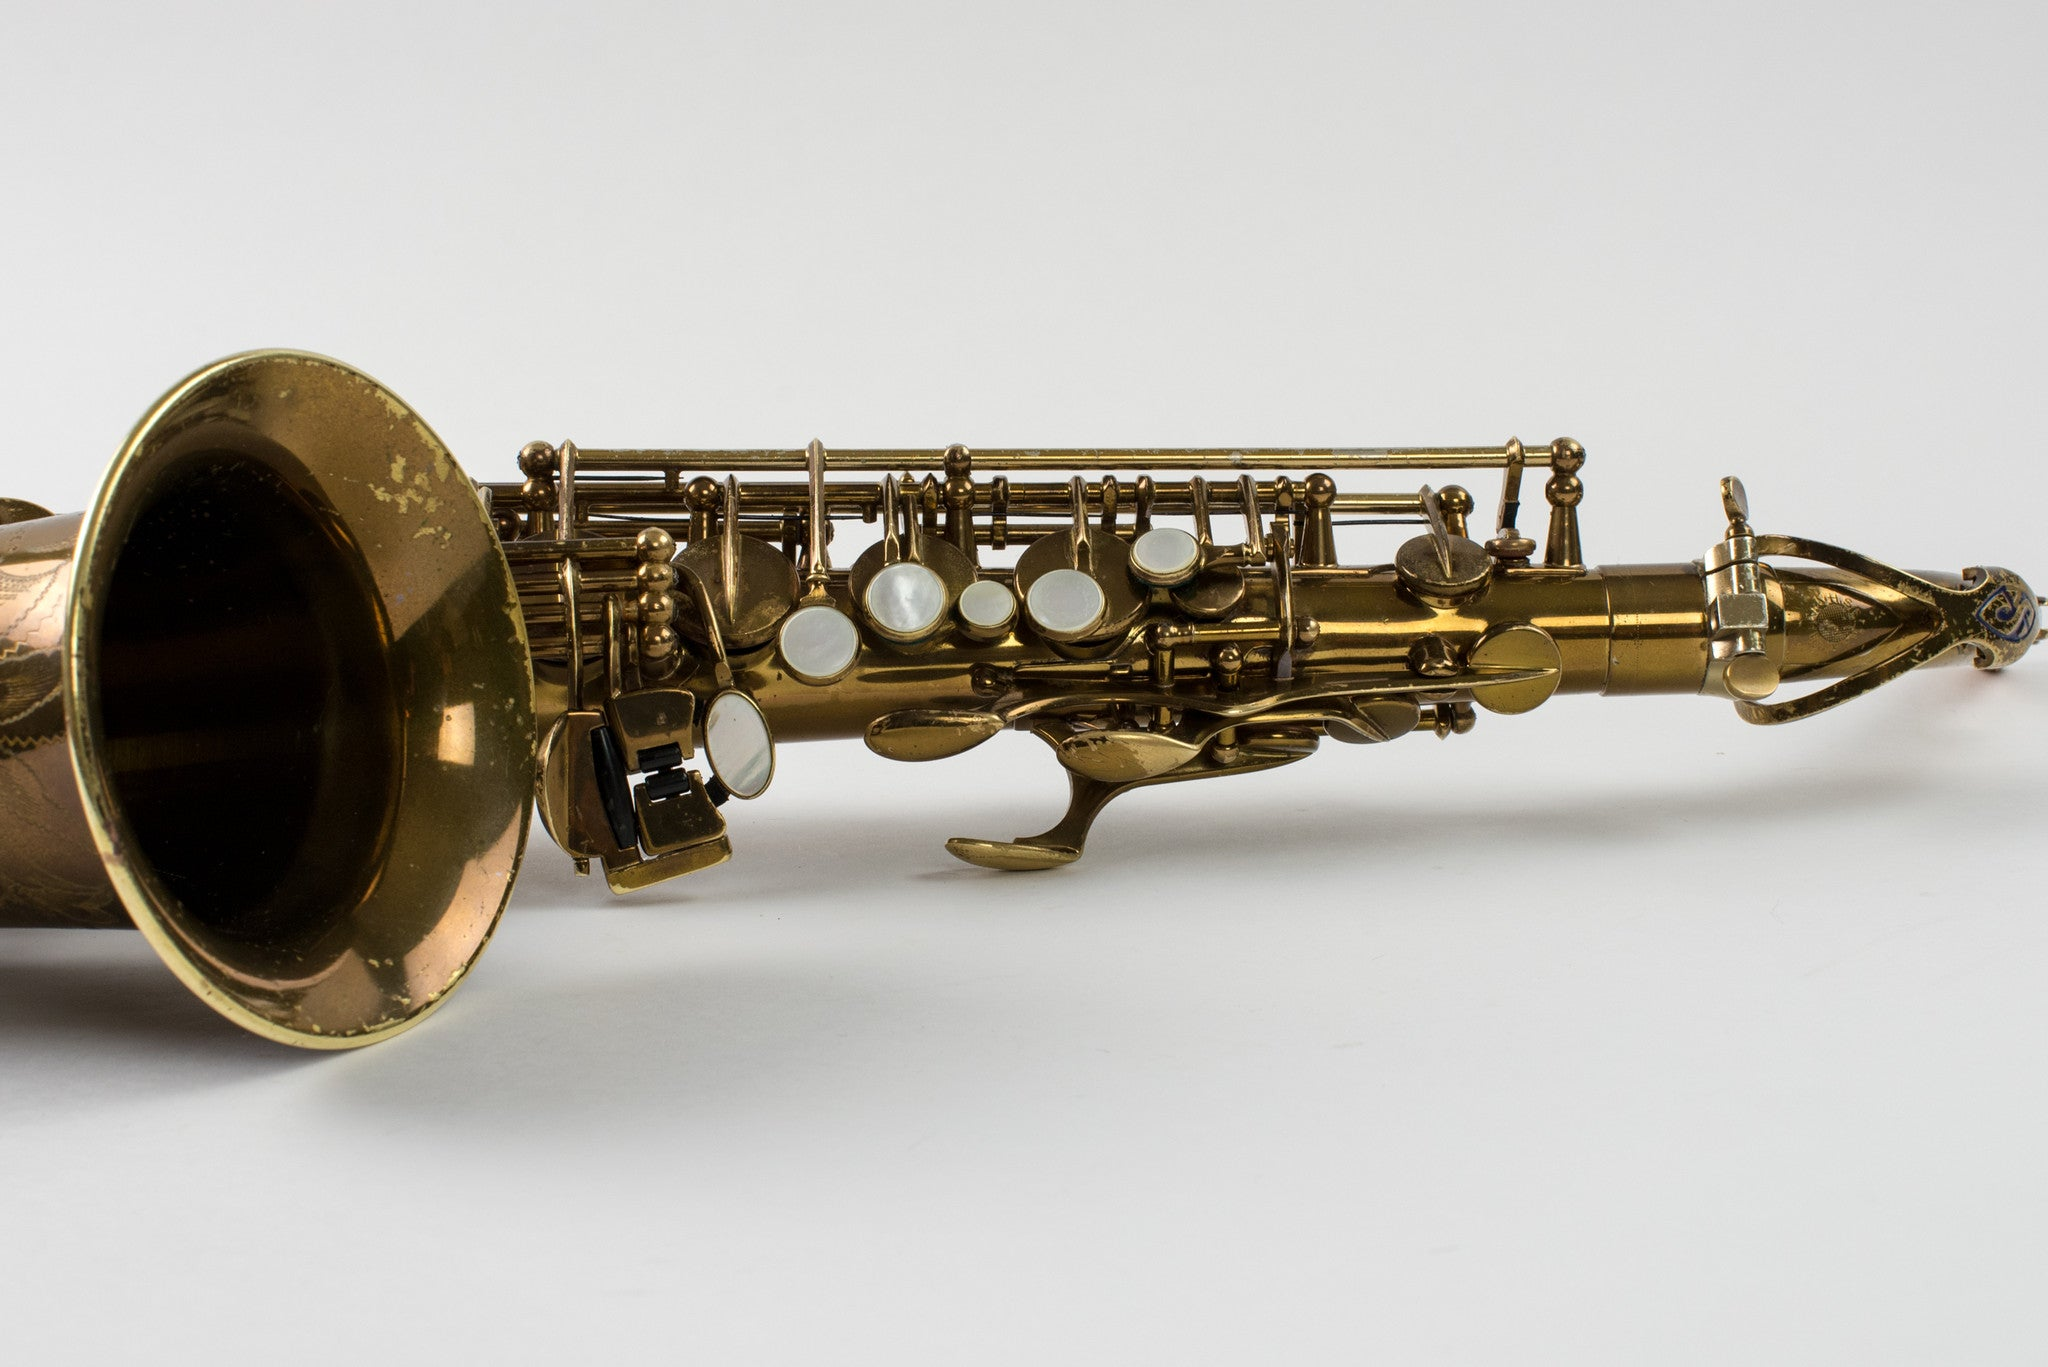 1954 57,xxx Selmer Mark VI Alto Saxophone, 98% Original Lacquer, Fresh Overhaul